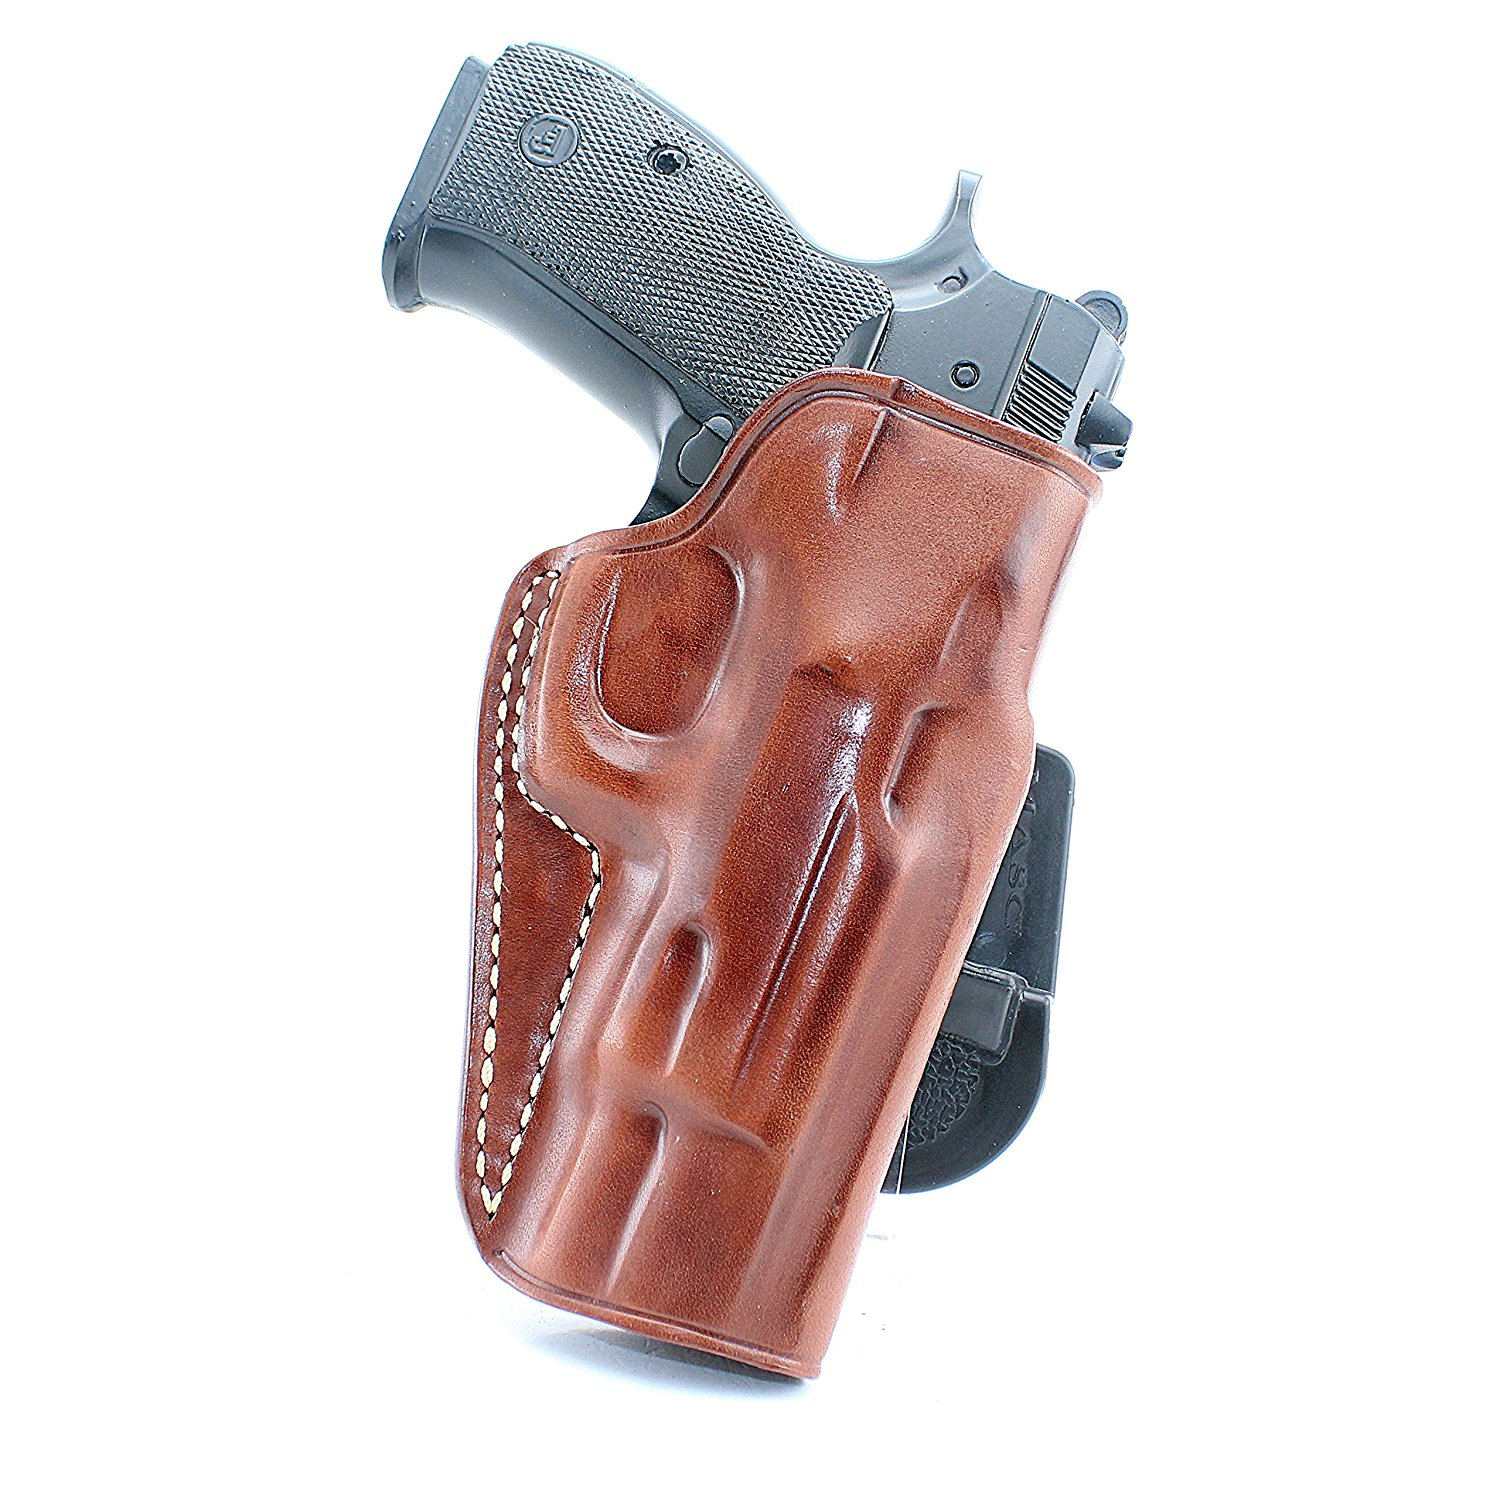 Buy LEATHER PADDLE HOLSTER (OWB) OPEN TOP FOR FN FNX 9, FN FNX 40,FN